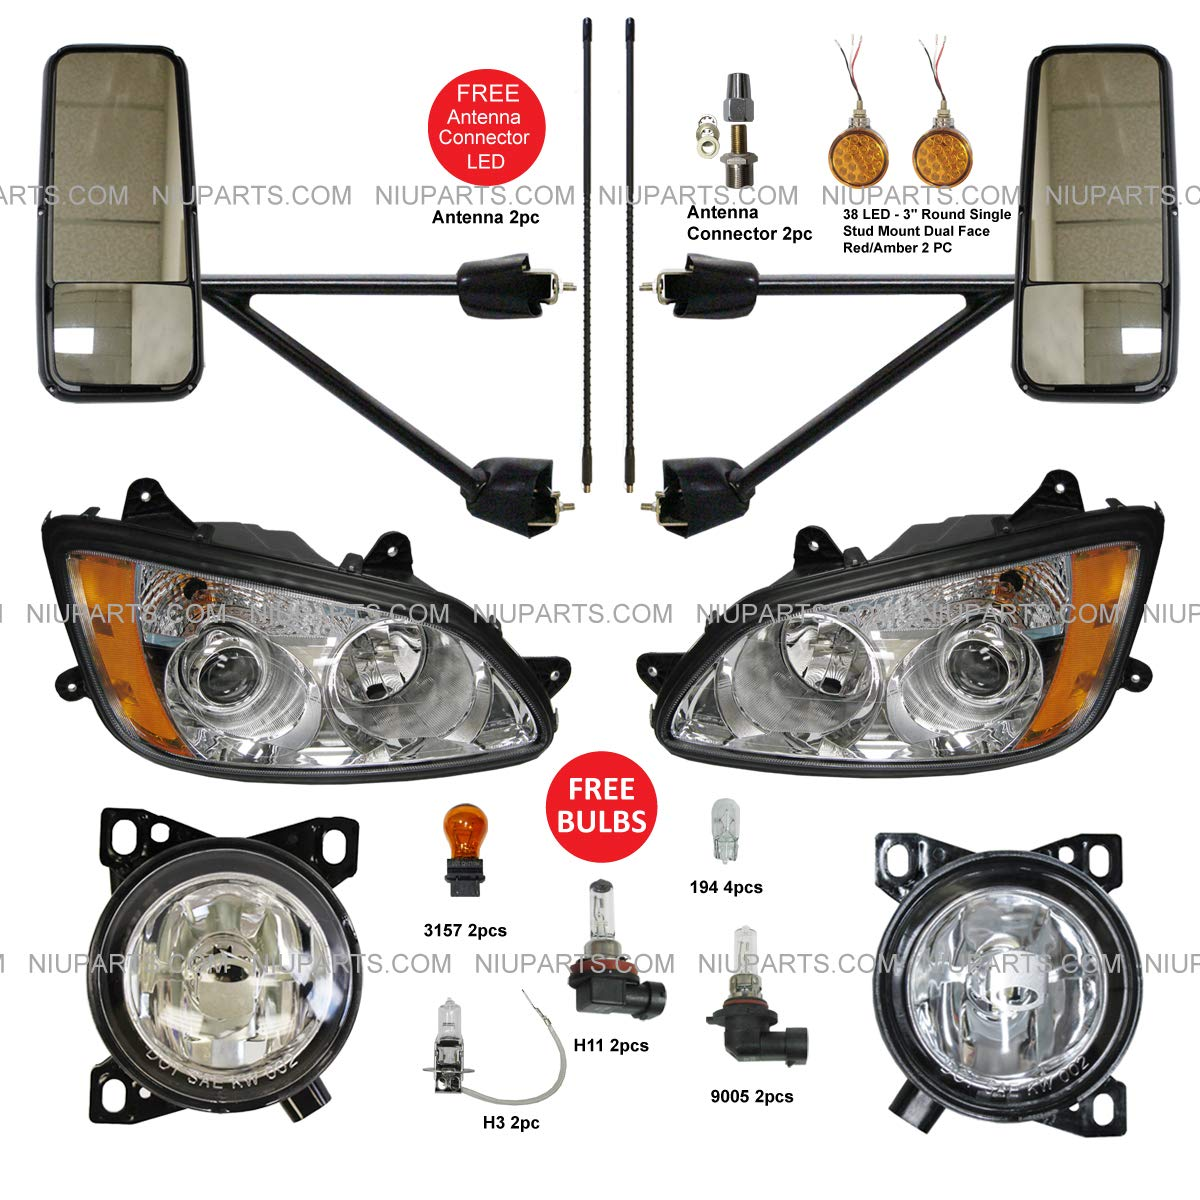 DOT Approved 4 x 6 Headlight OEM Replacement Rectagular Sealed Beam Assemblies H4651 H4656 12-24V Fits For Freightliner Semi Peterbilt 379 Chevy C10 S10 Blazer RV KW Kenworth T600 W900B Truck 2 pcs